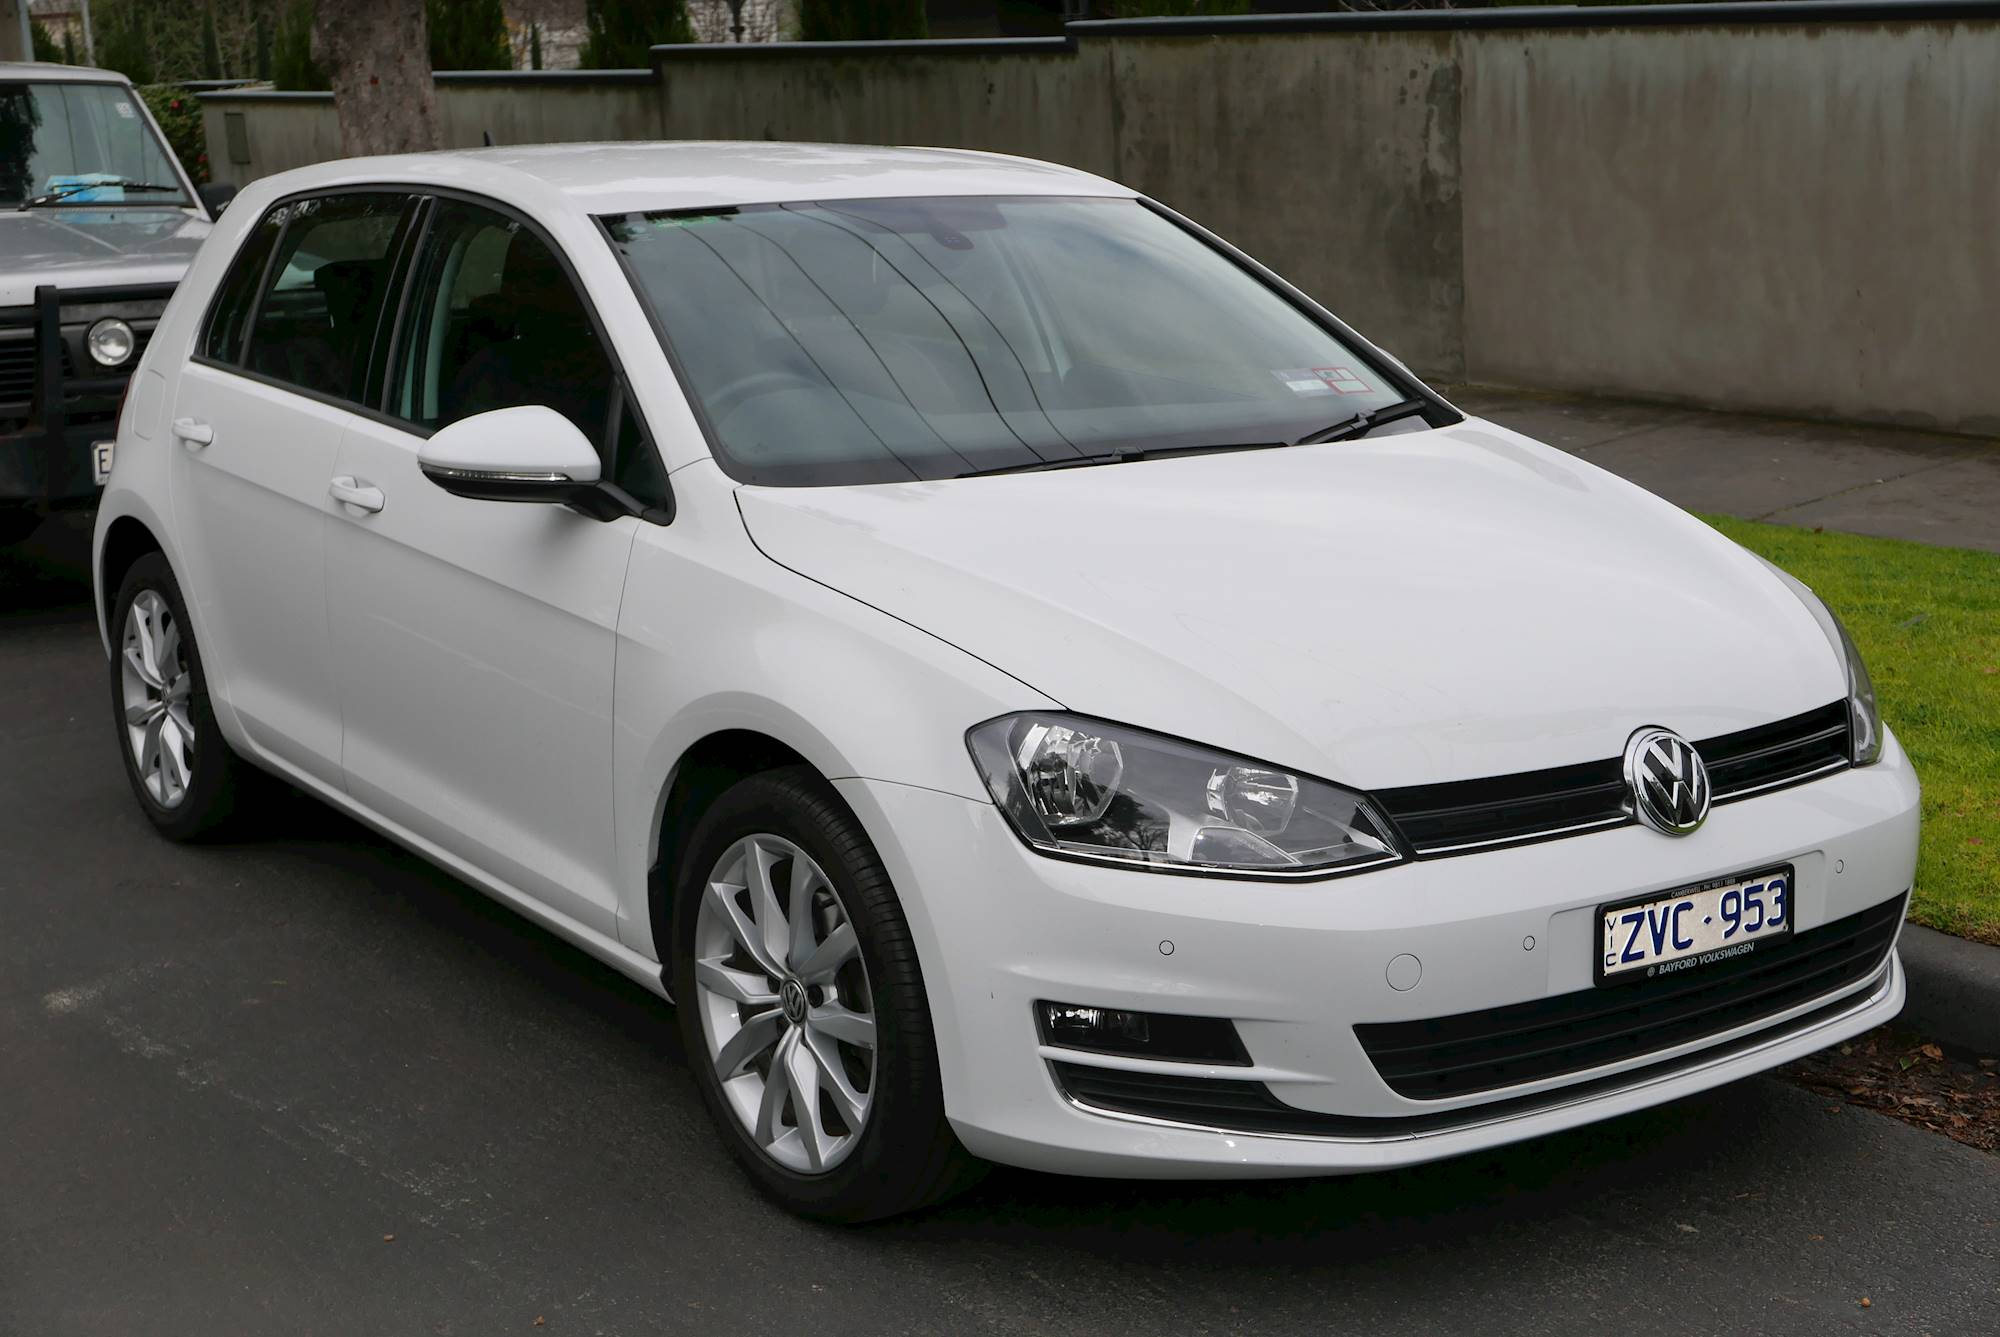 vw golf mk7 owners manual